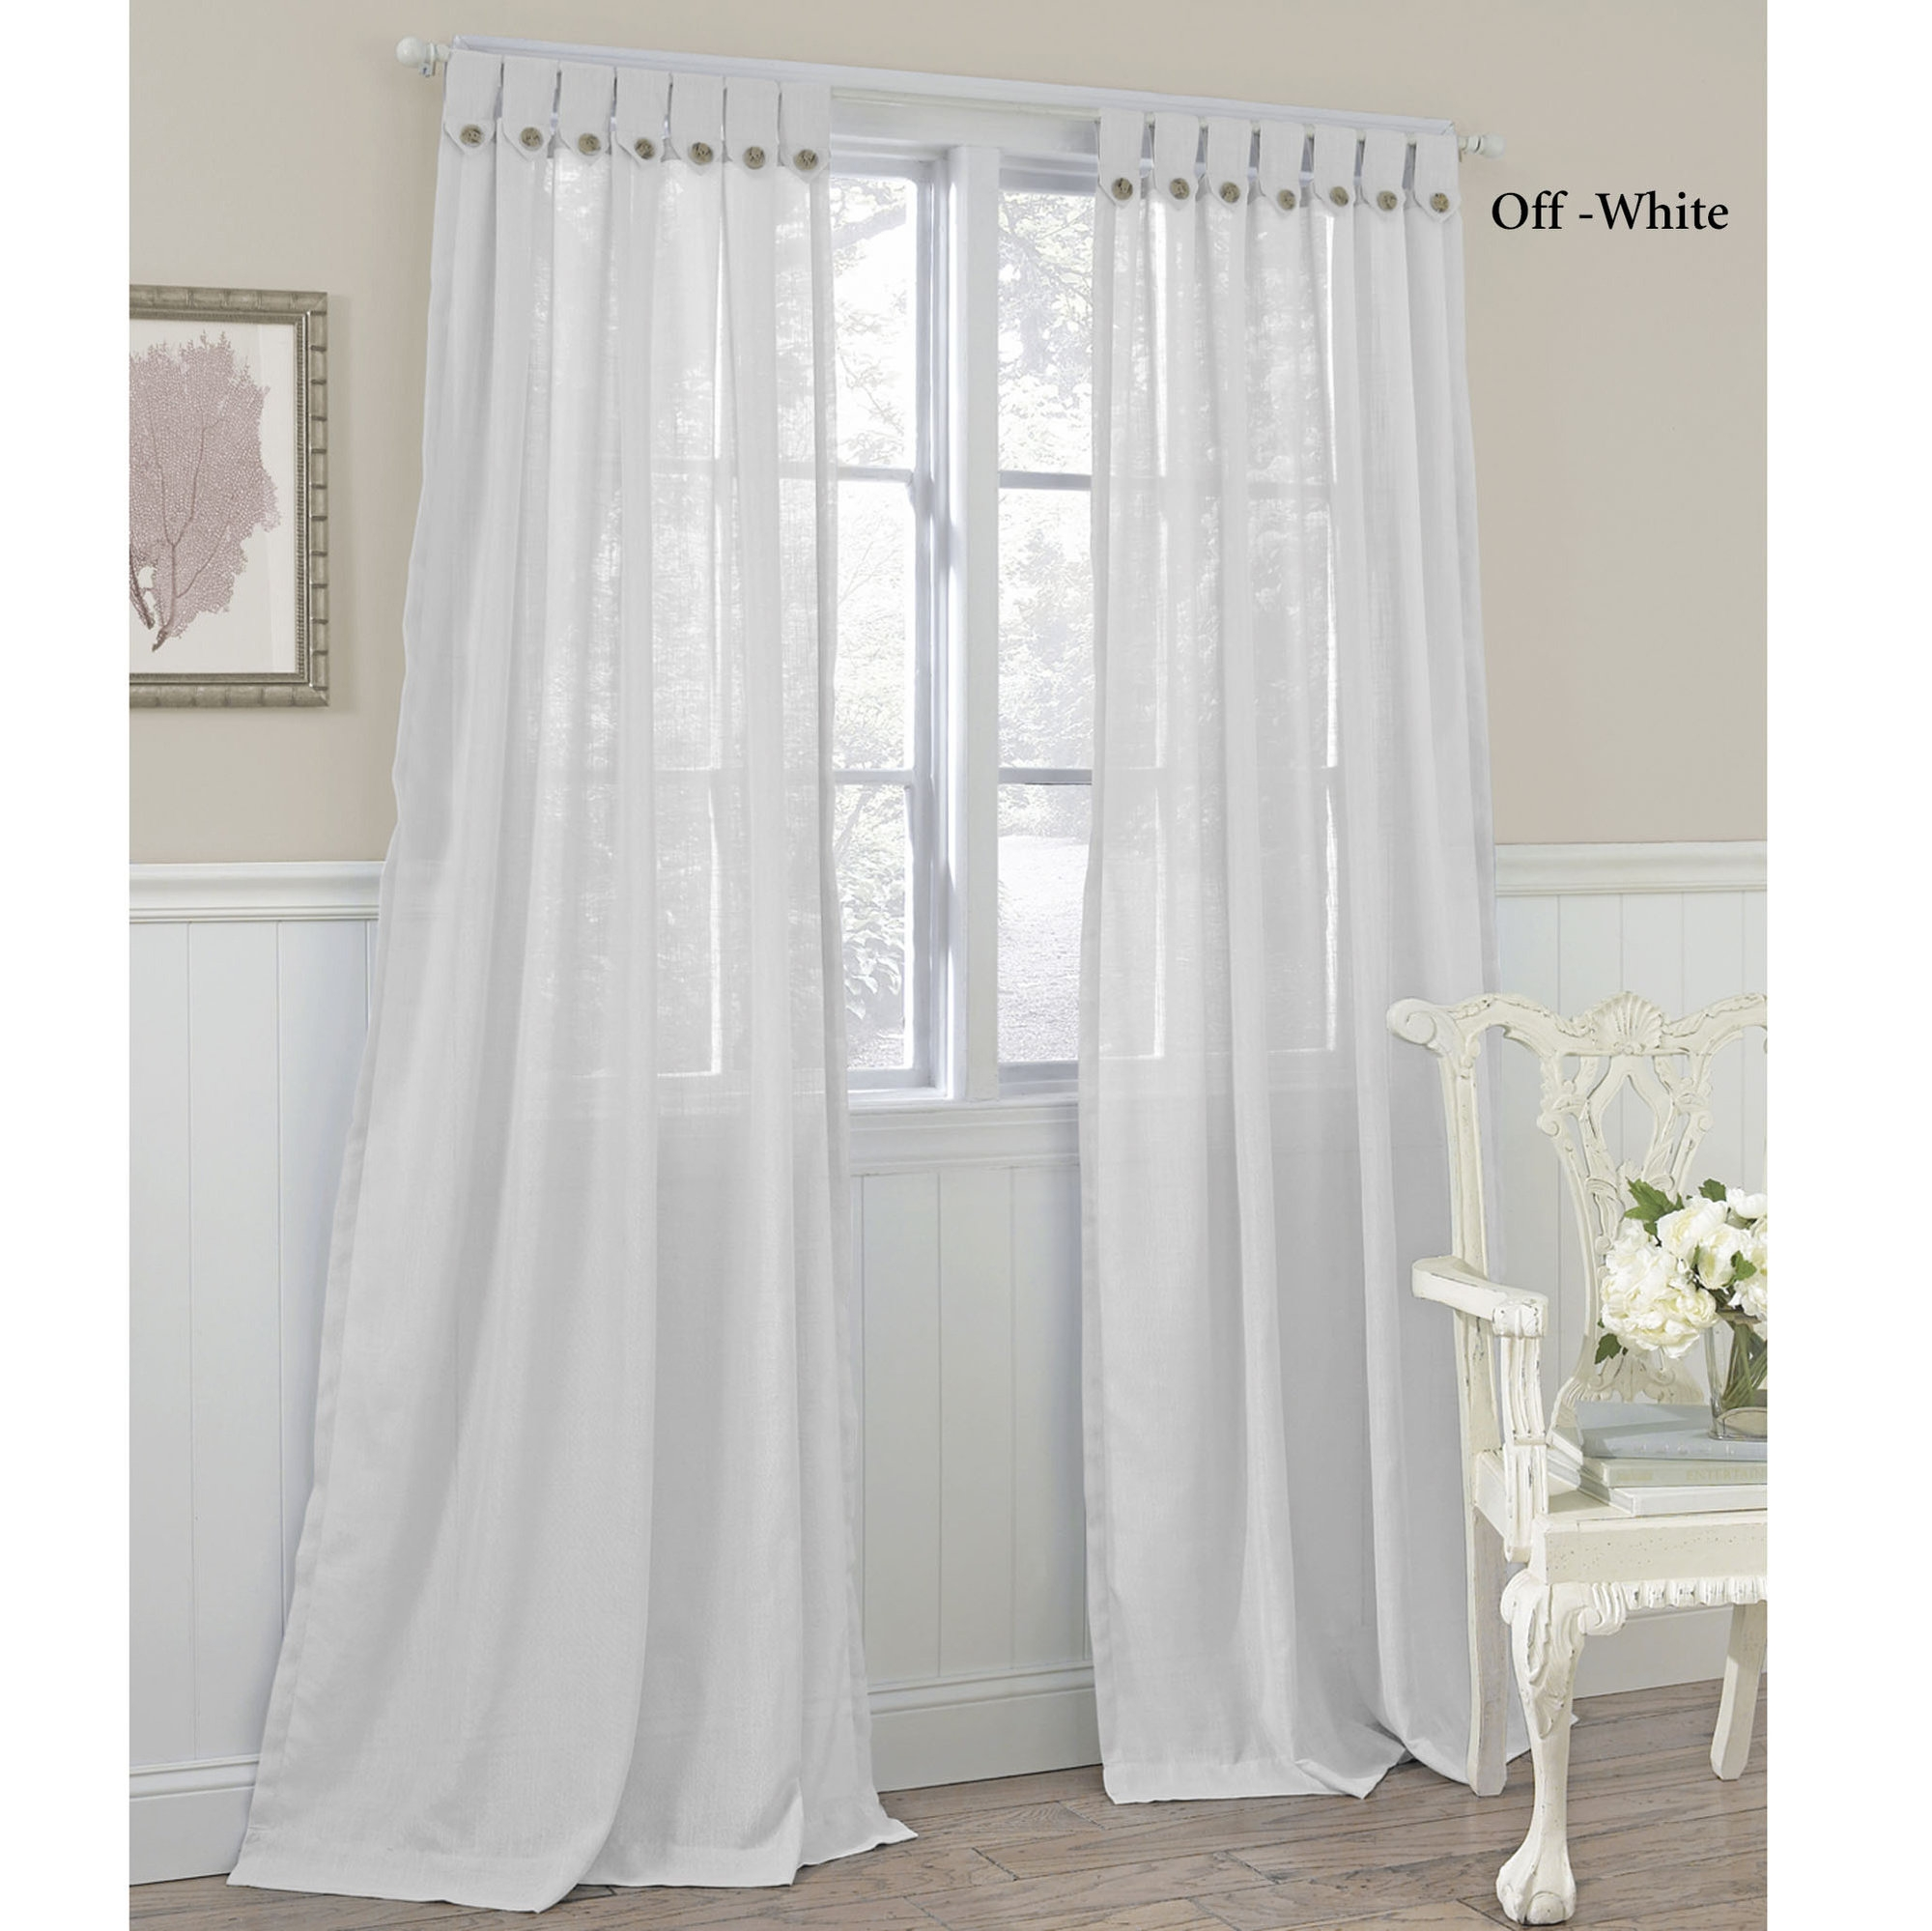 Semi Sheer Curtains Roselawnlutheran In White Sheer Cotton Curtains (Image 10 of 15)